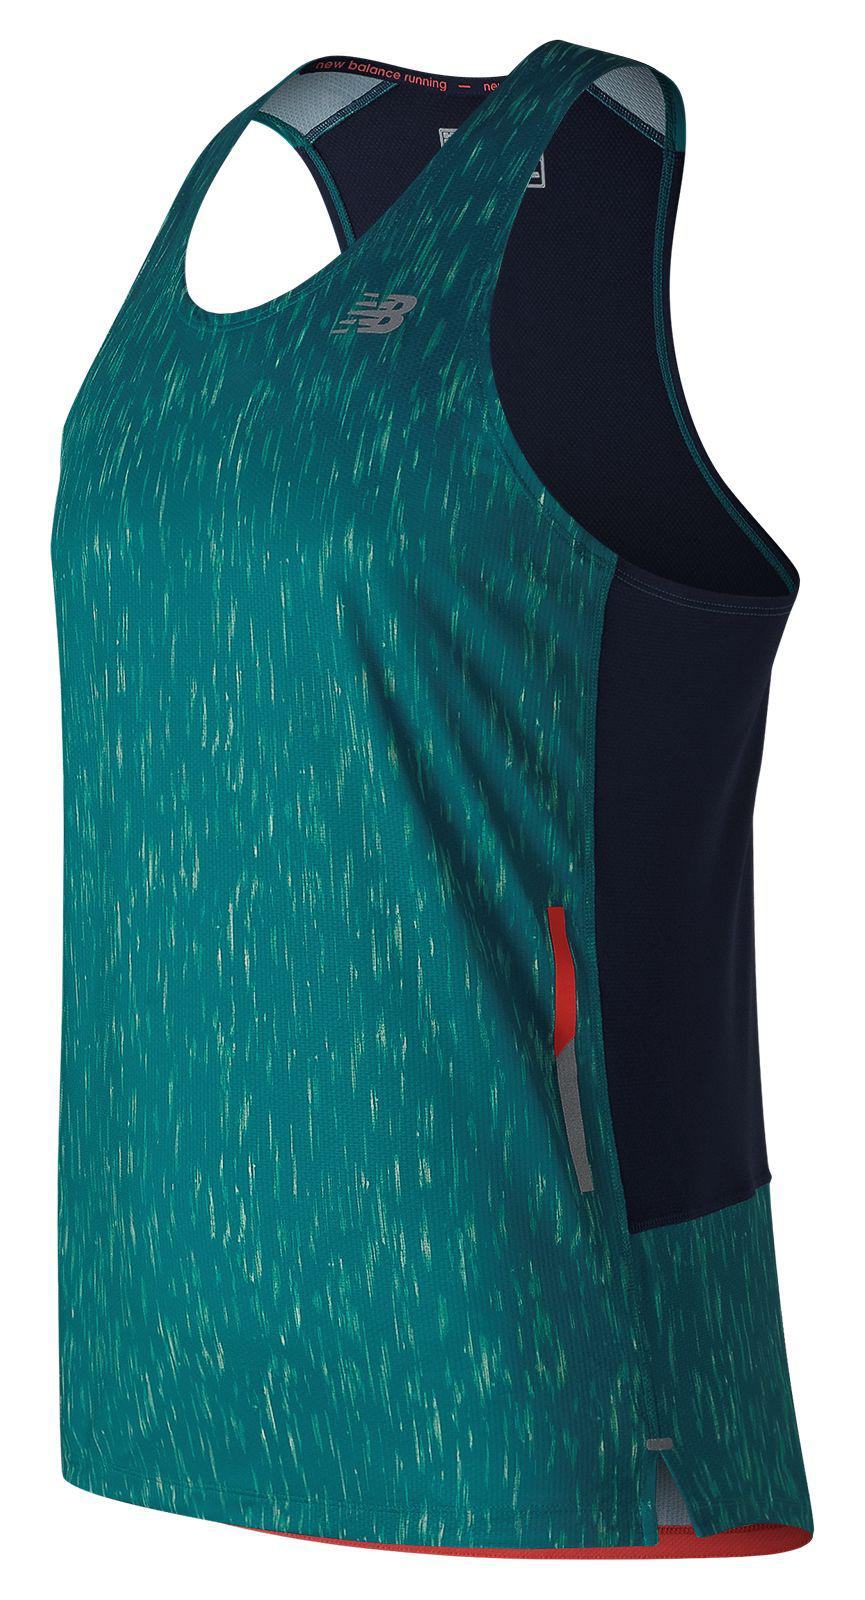 5e3595ad29c91 New Balance Printed Nb Ice 2e Singlet in Blue - Lyst